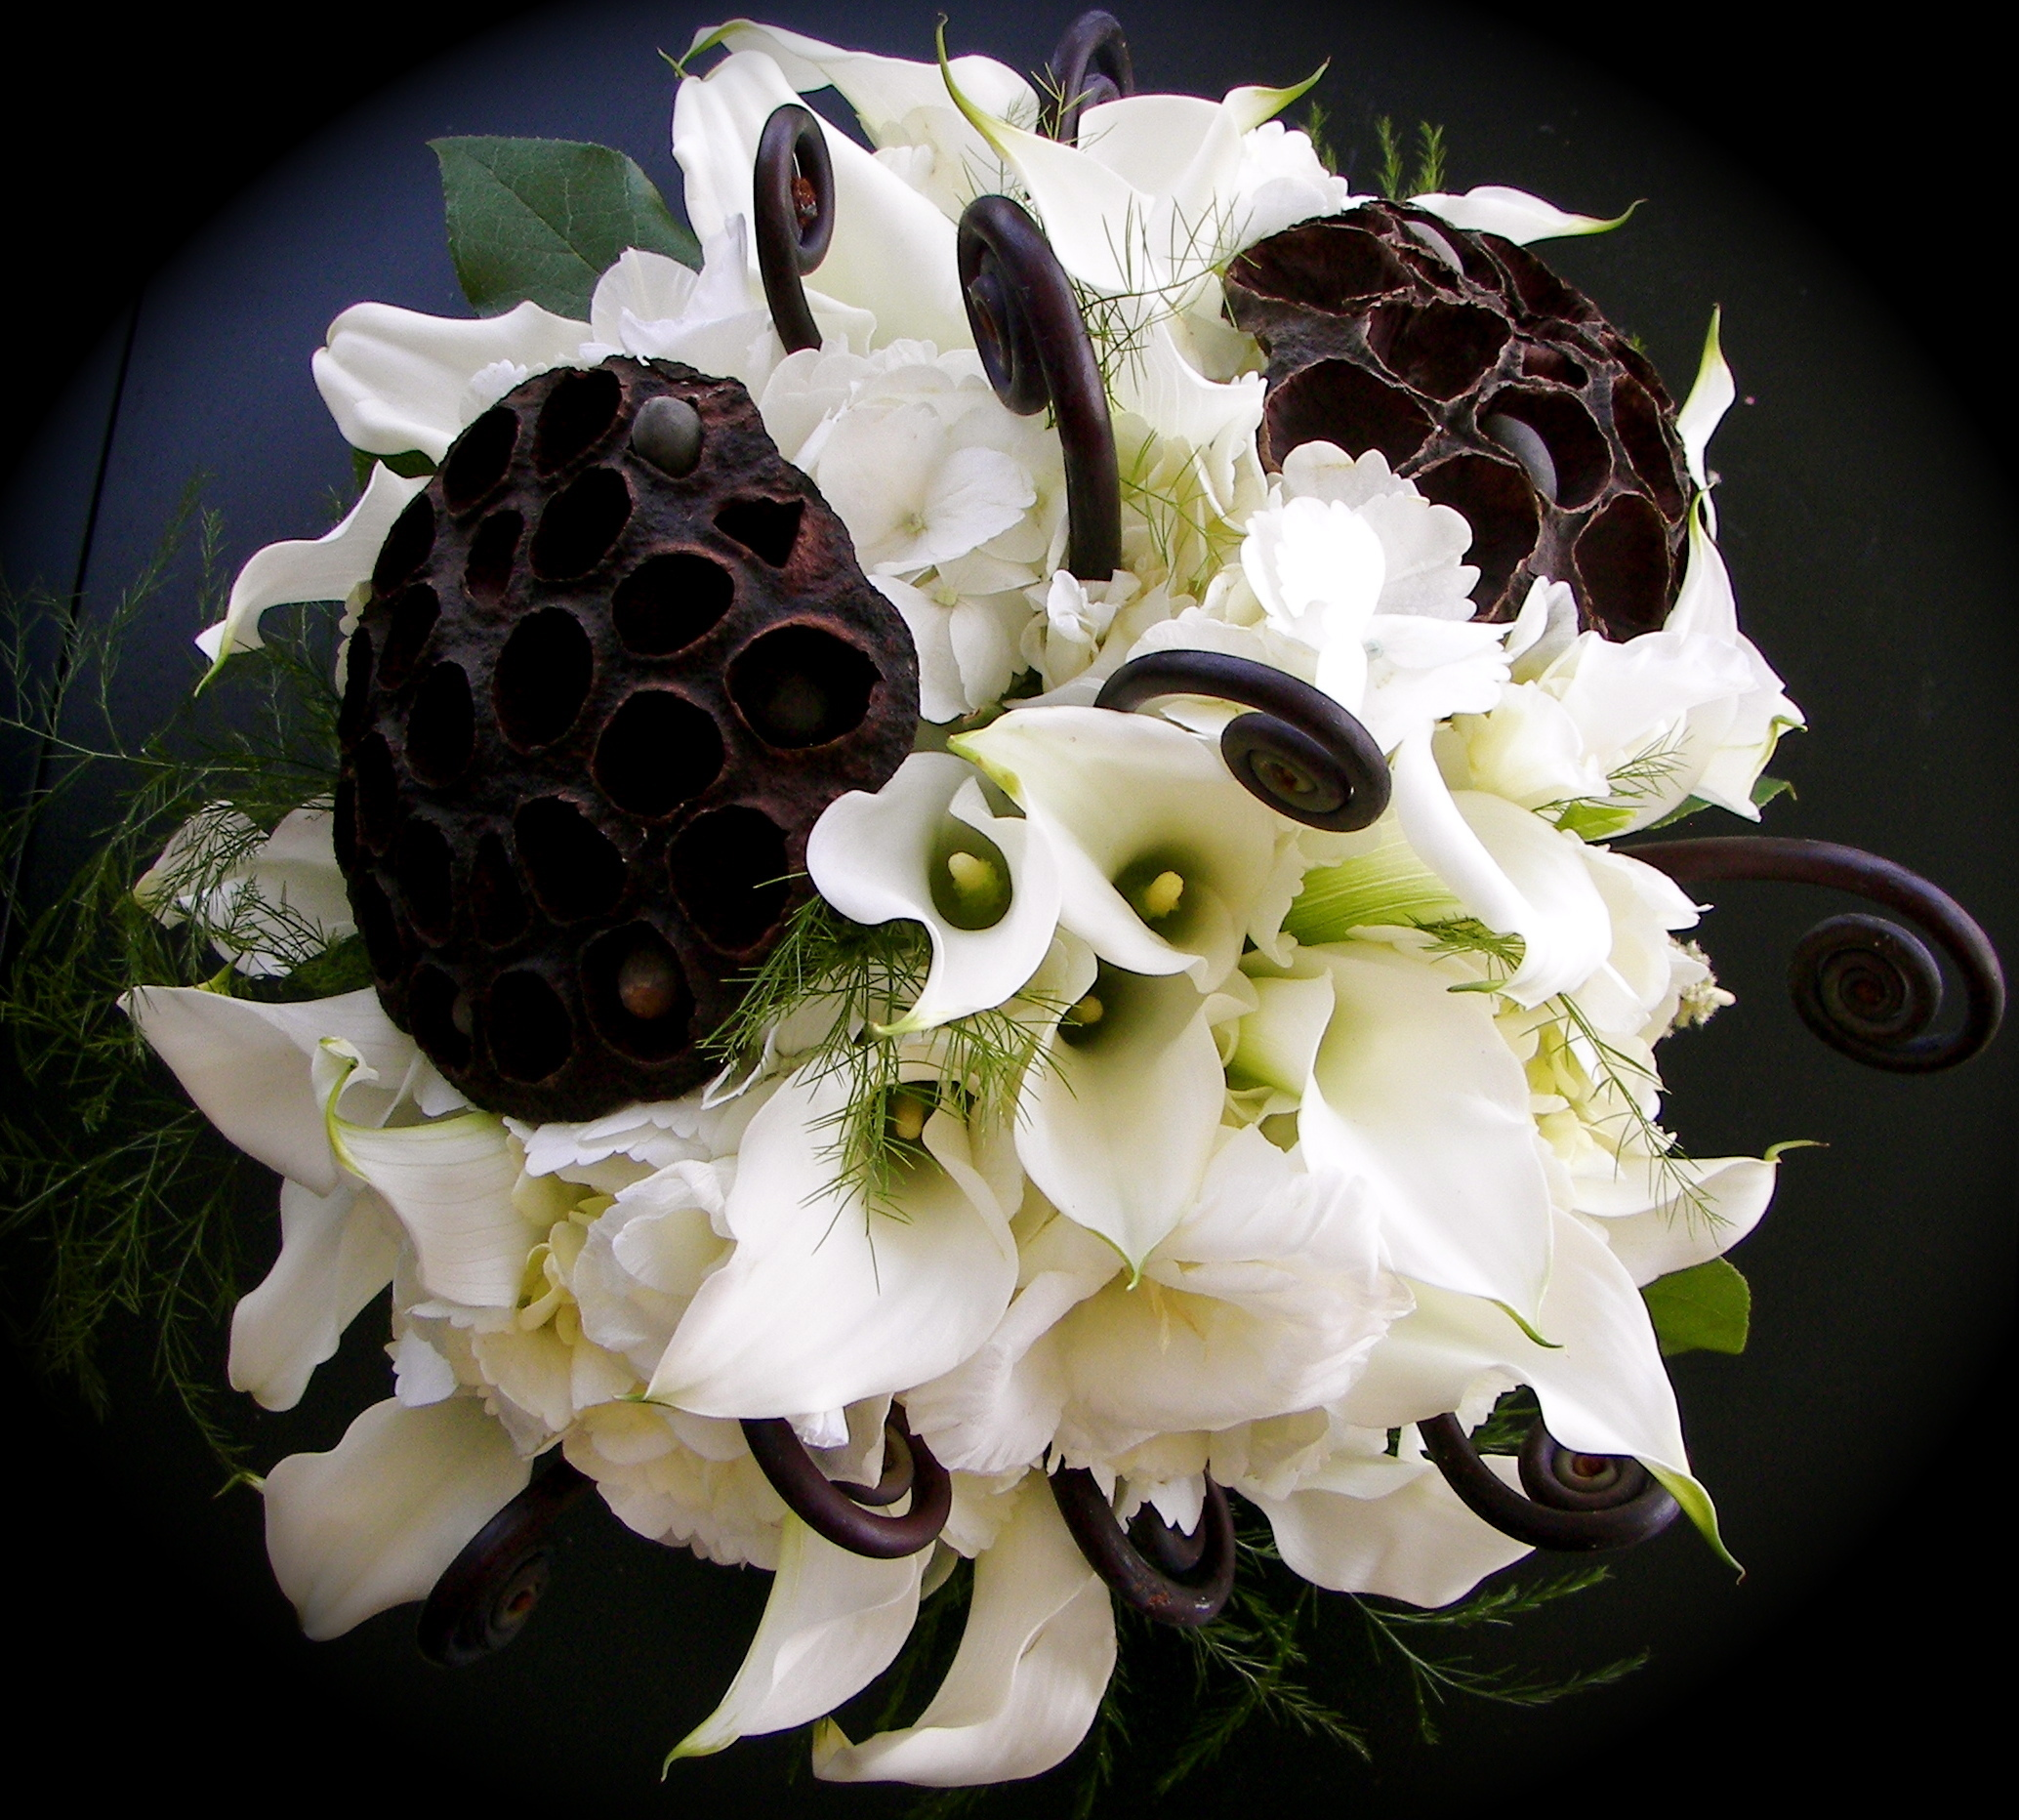 Flowers & Decor, white, brown, Flowers, Mini, Hydrangeas, Callas, Fiddlehead, Ferns